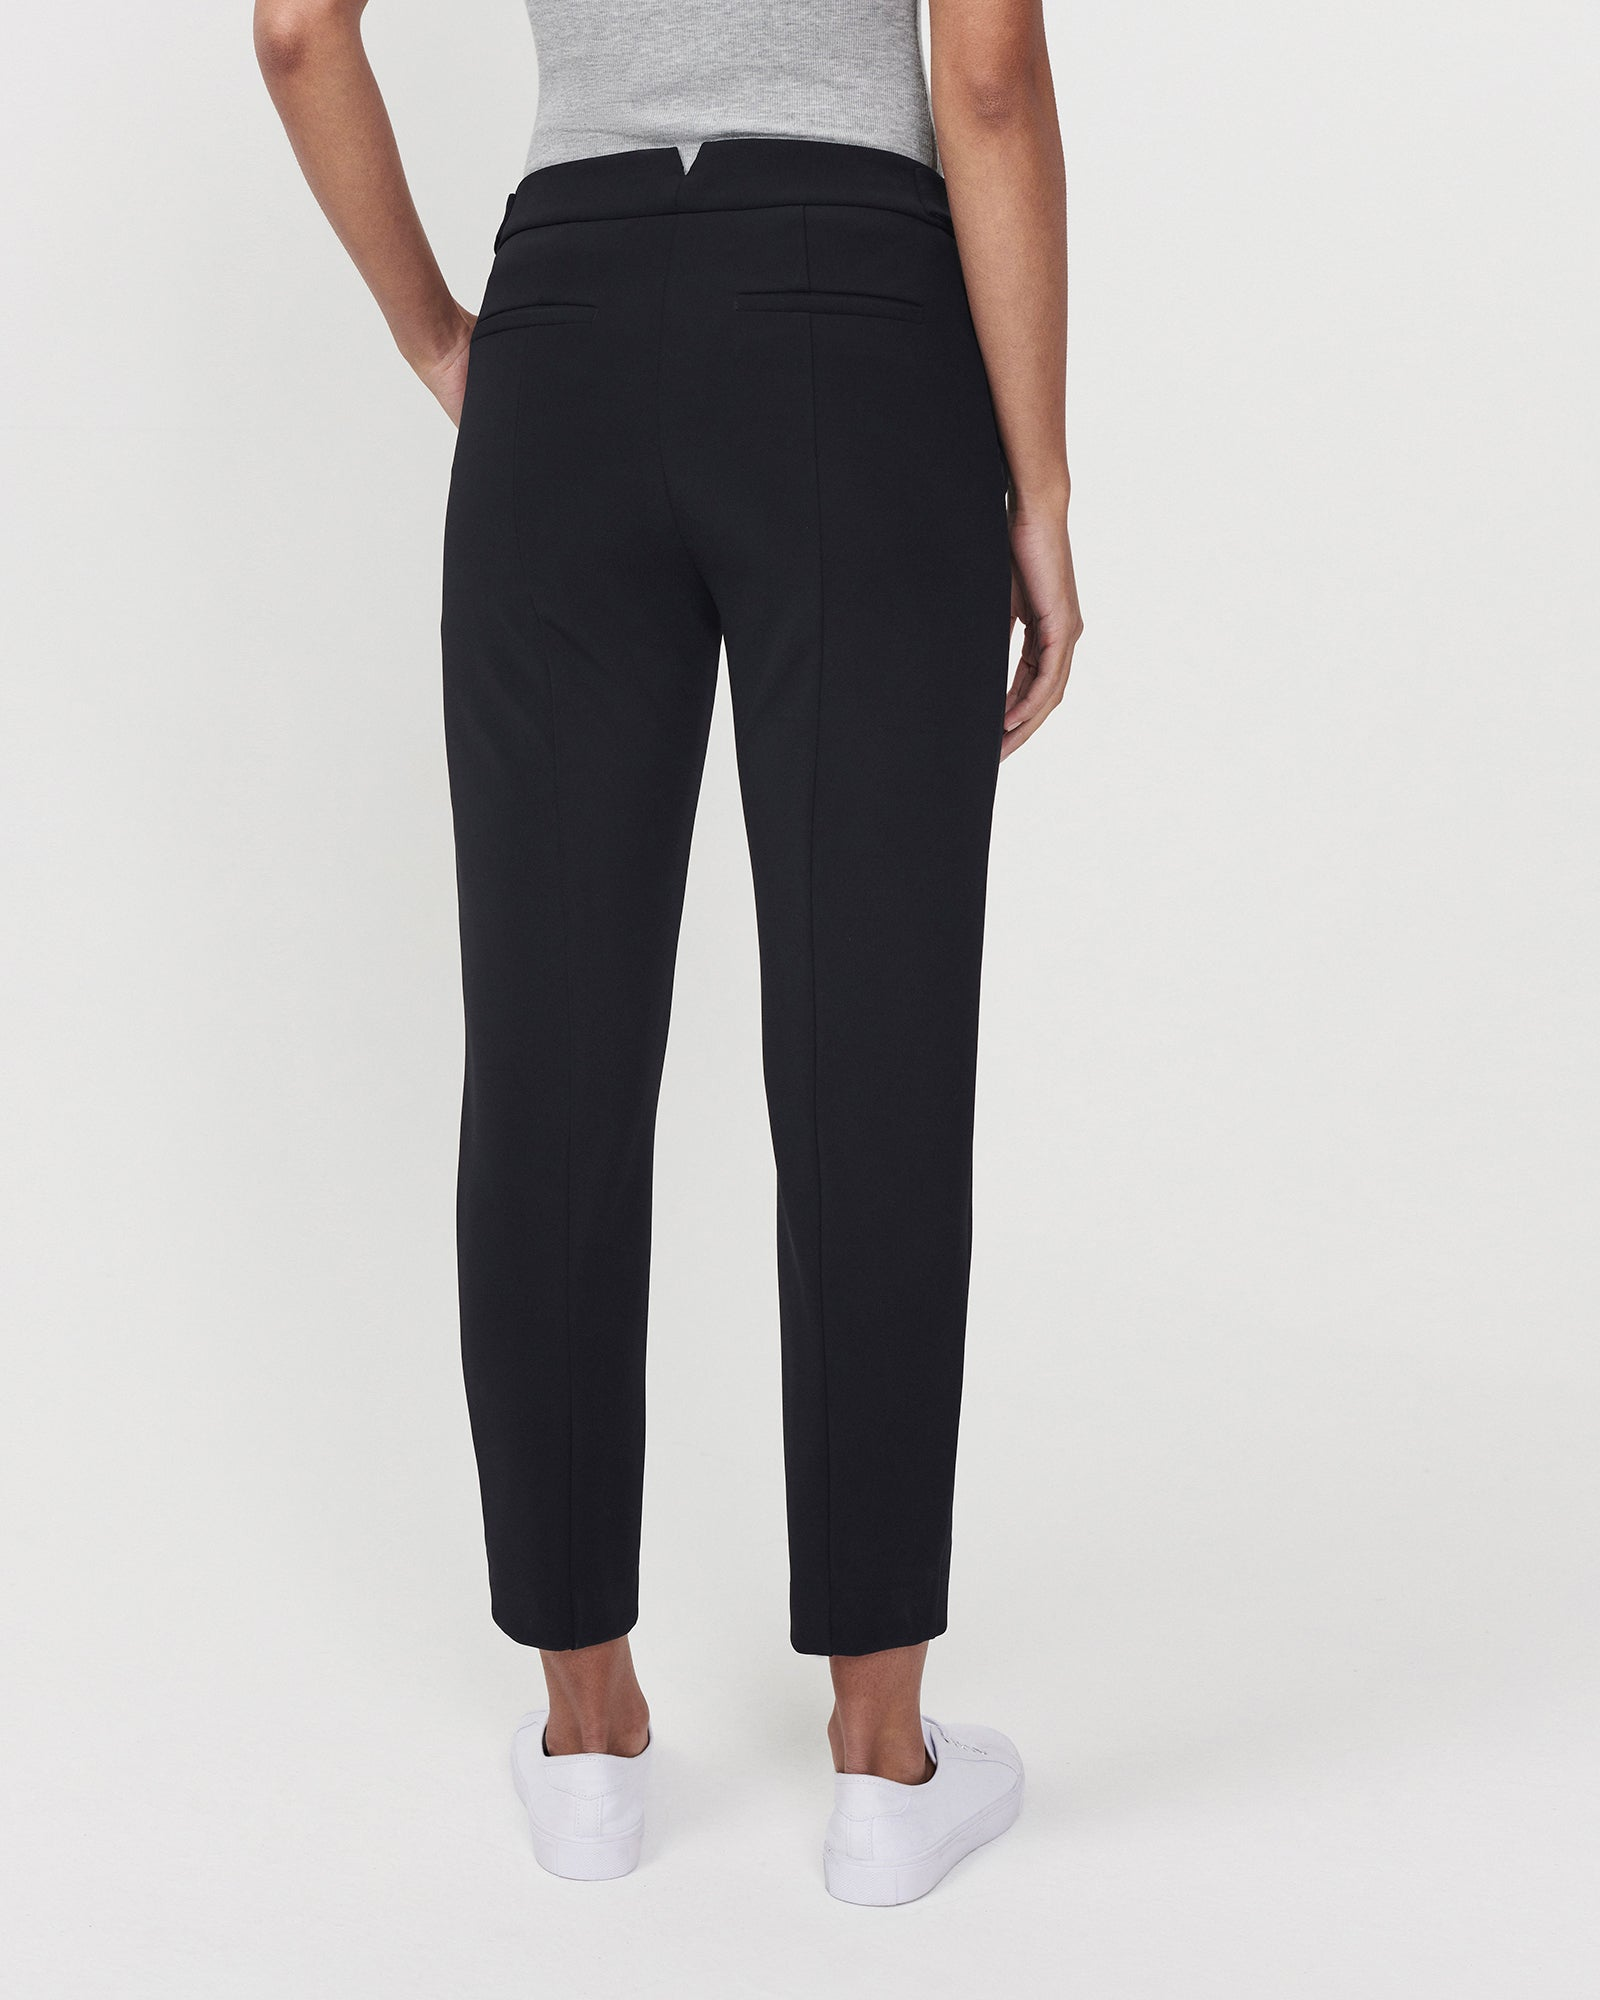 Pegged For Success Pant Black